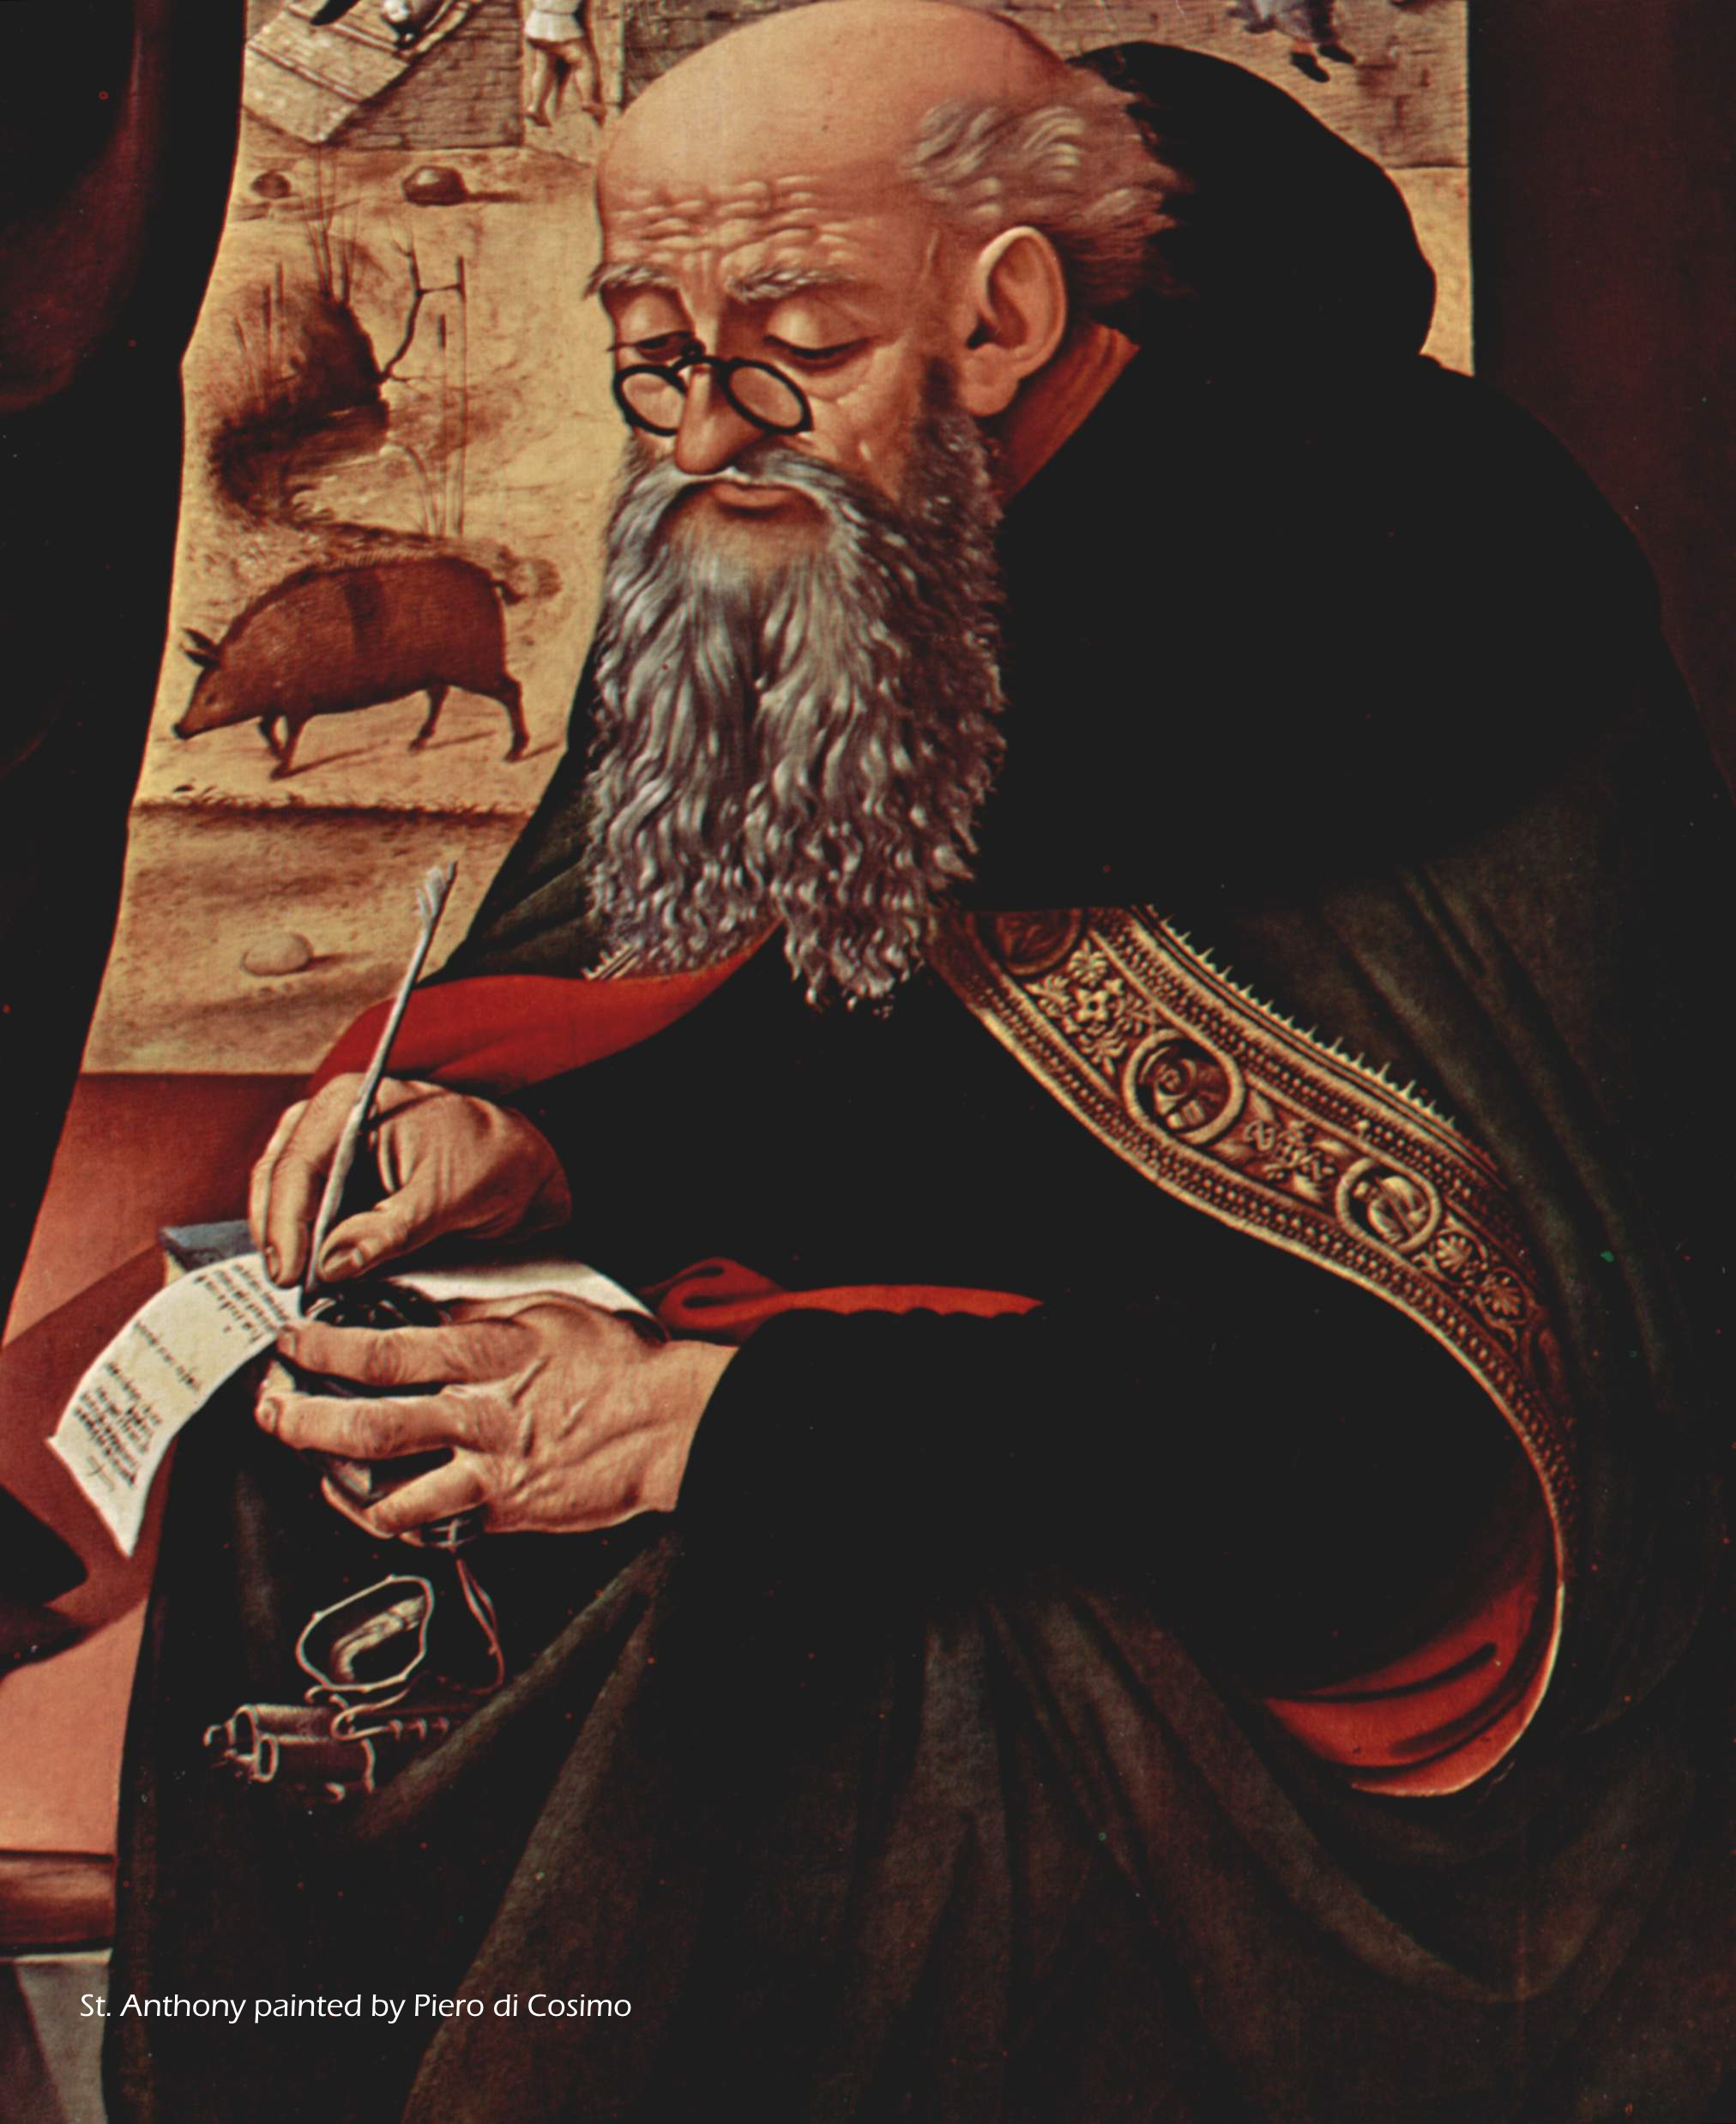 St Anthony father of hermits